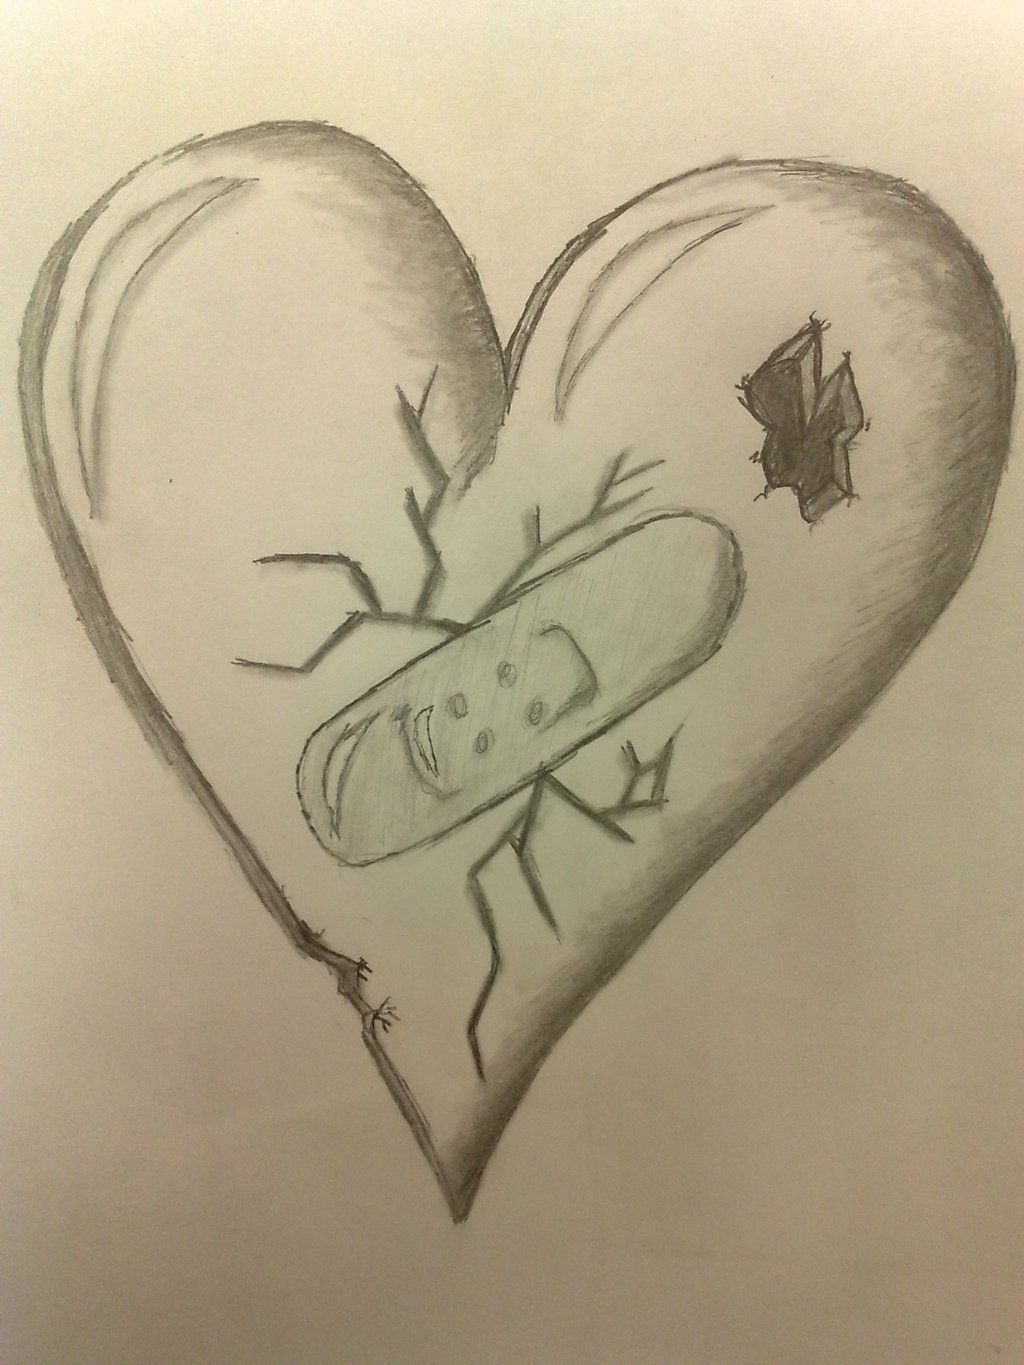 pretty broken hearts drawings free download cool <b>broken hearts